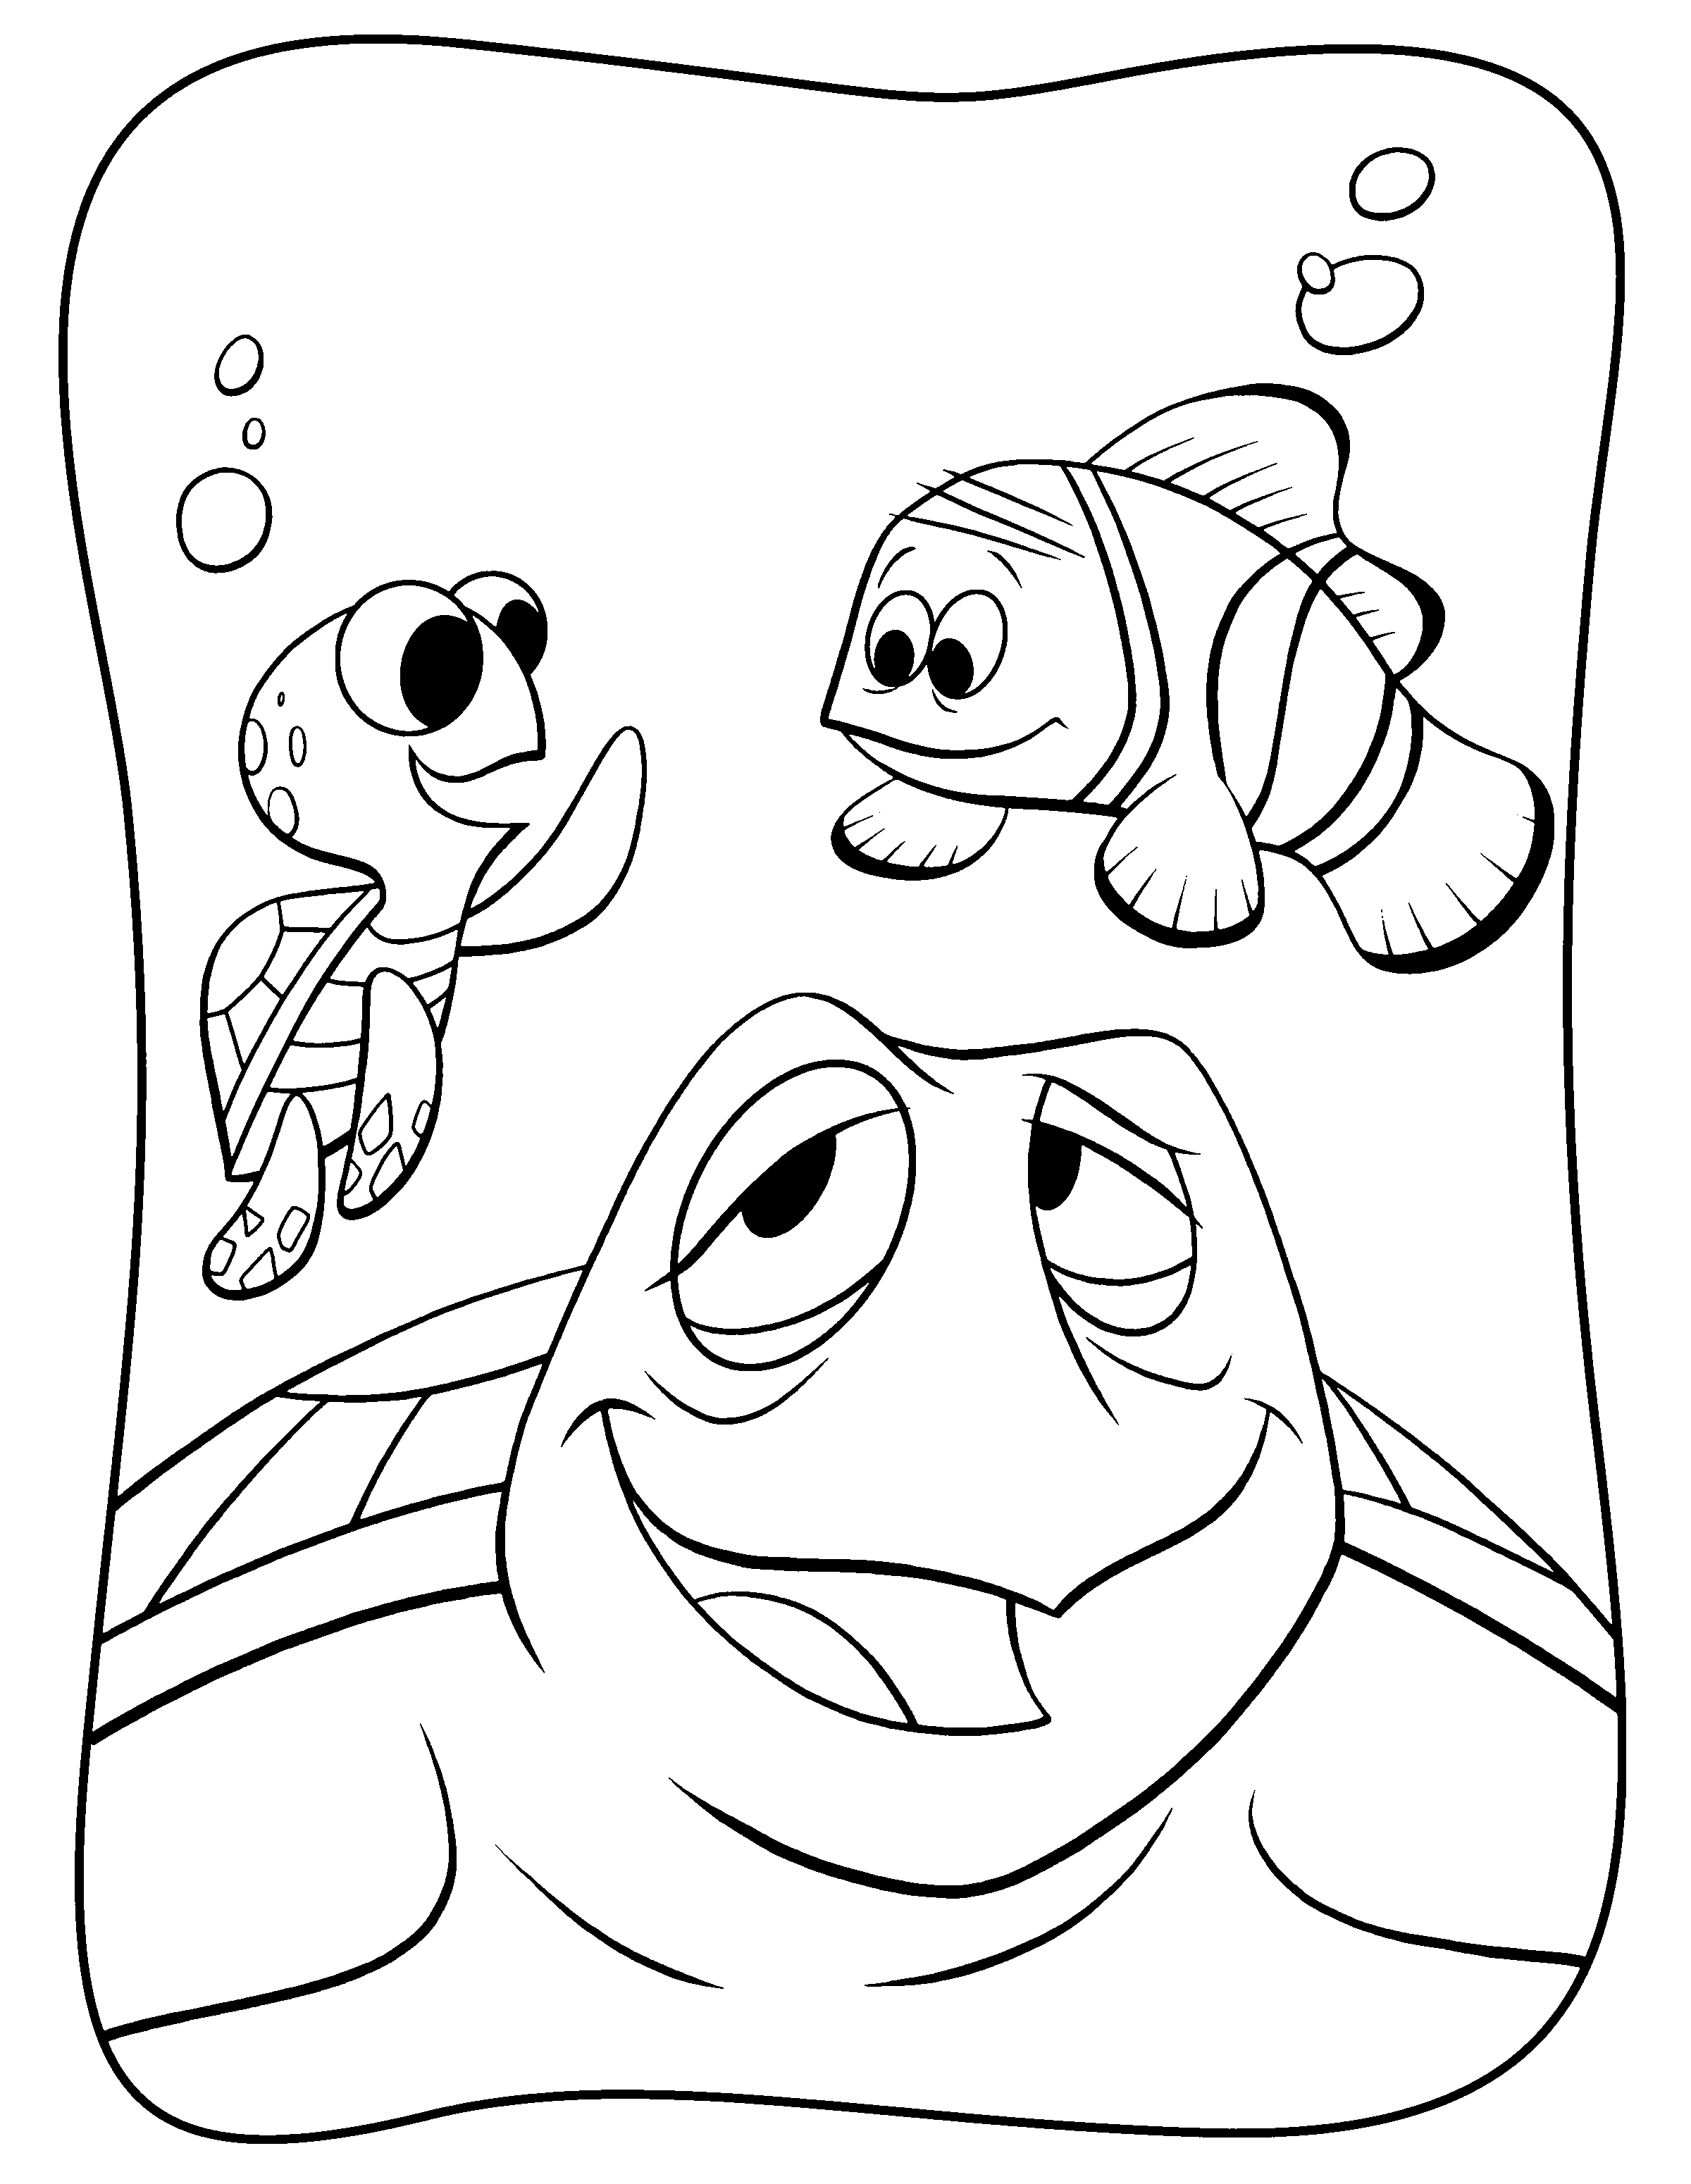 Finding Nemo more coloring pages > If you're looking